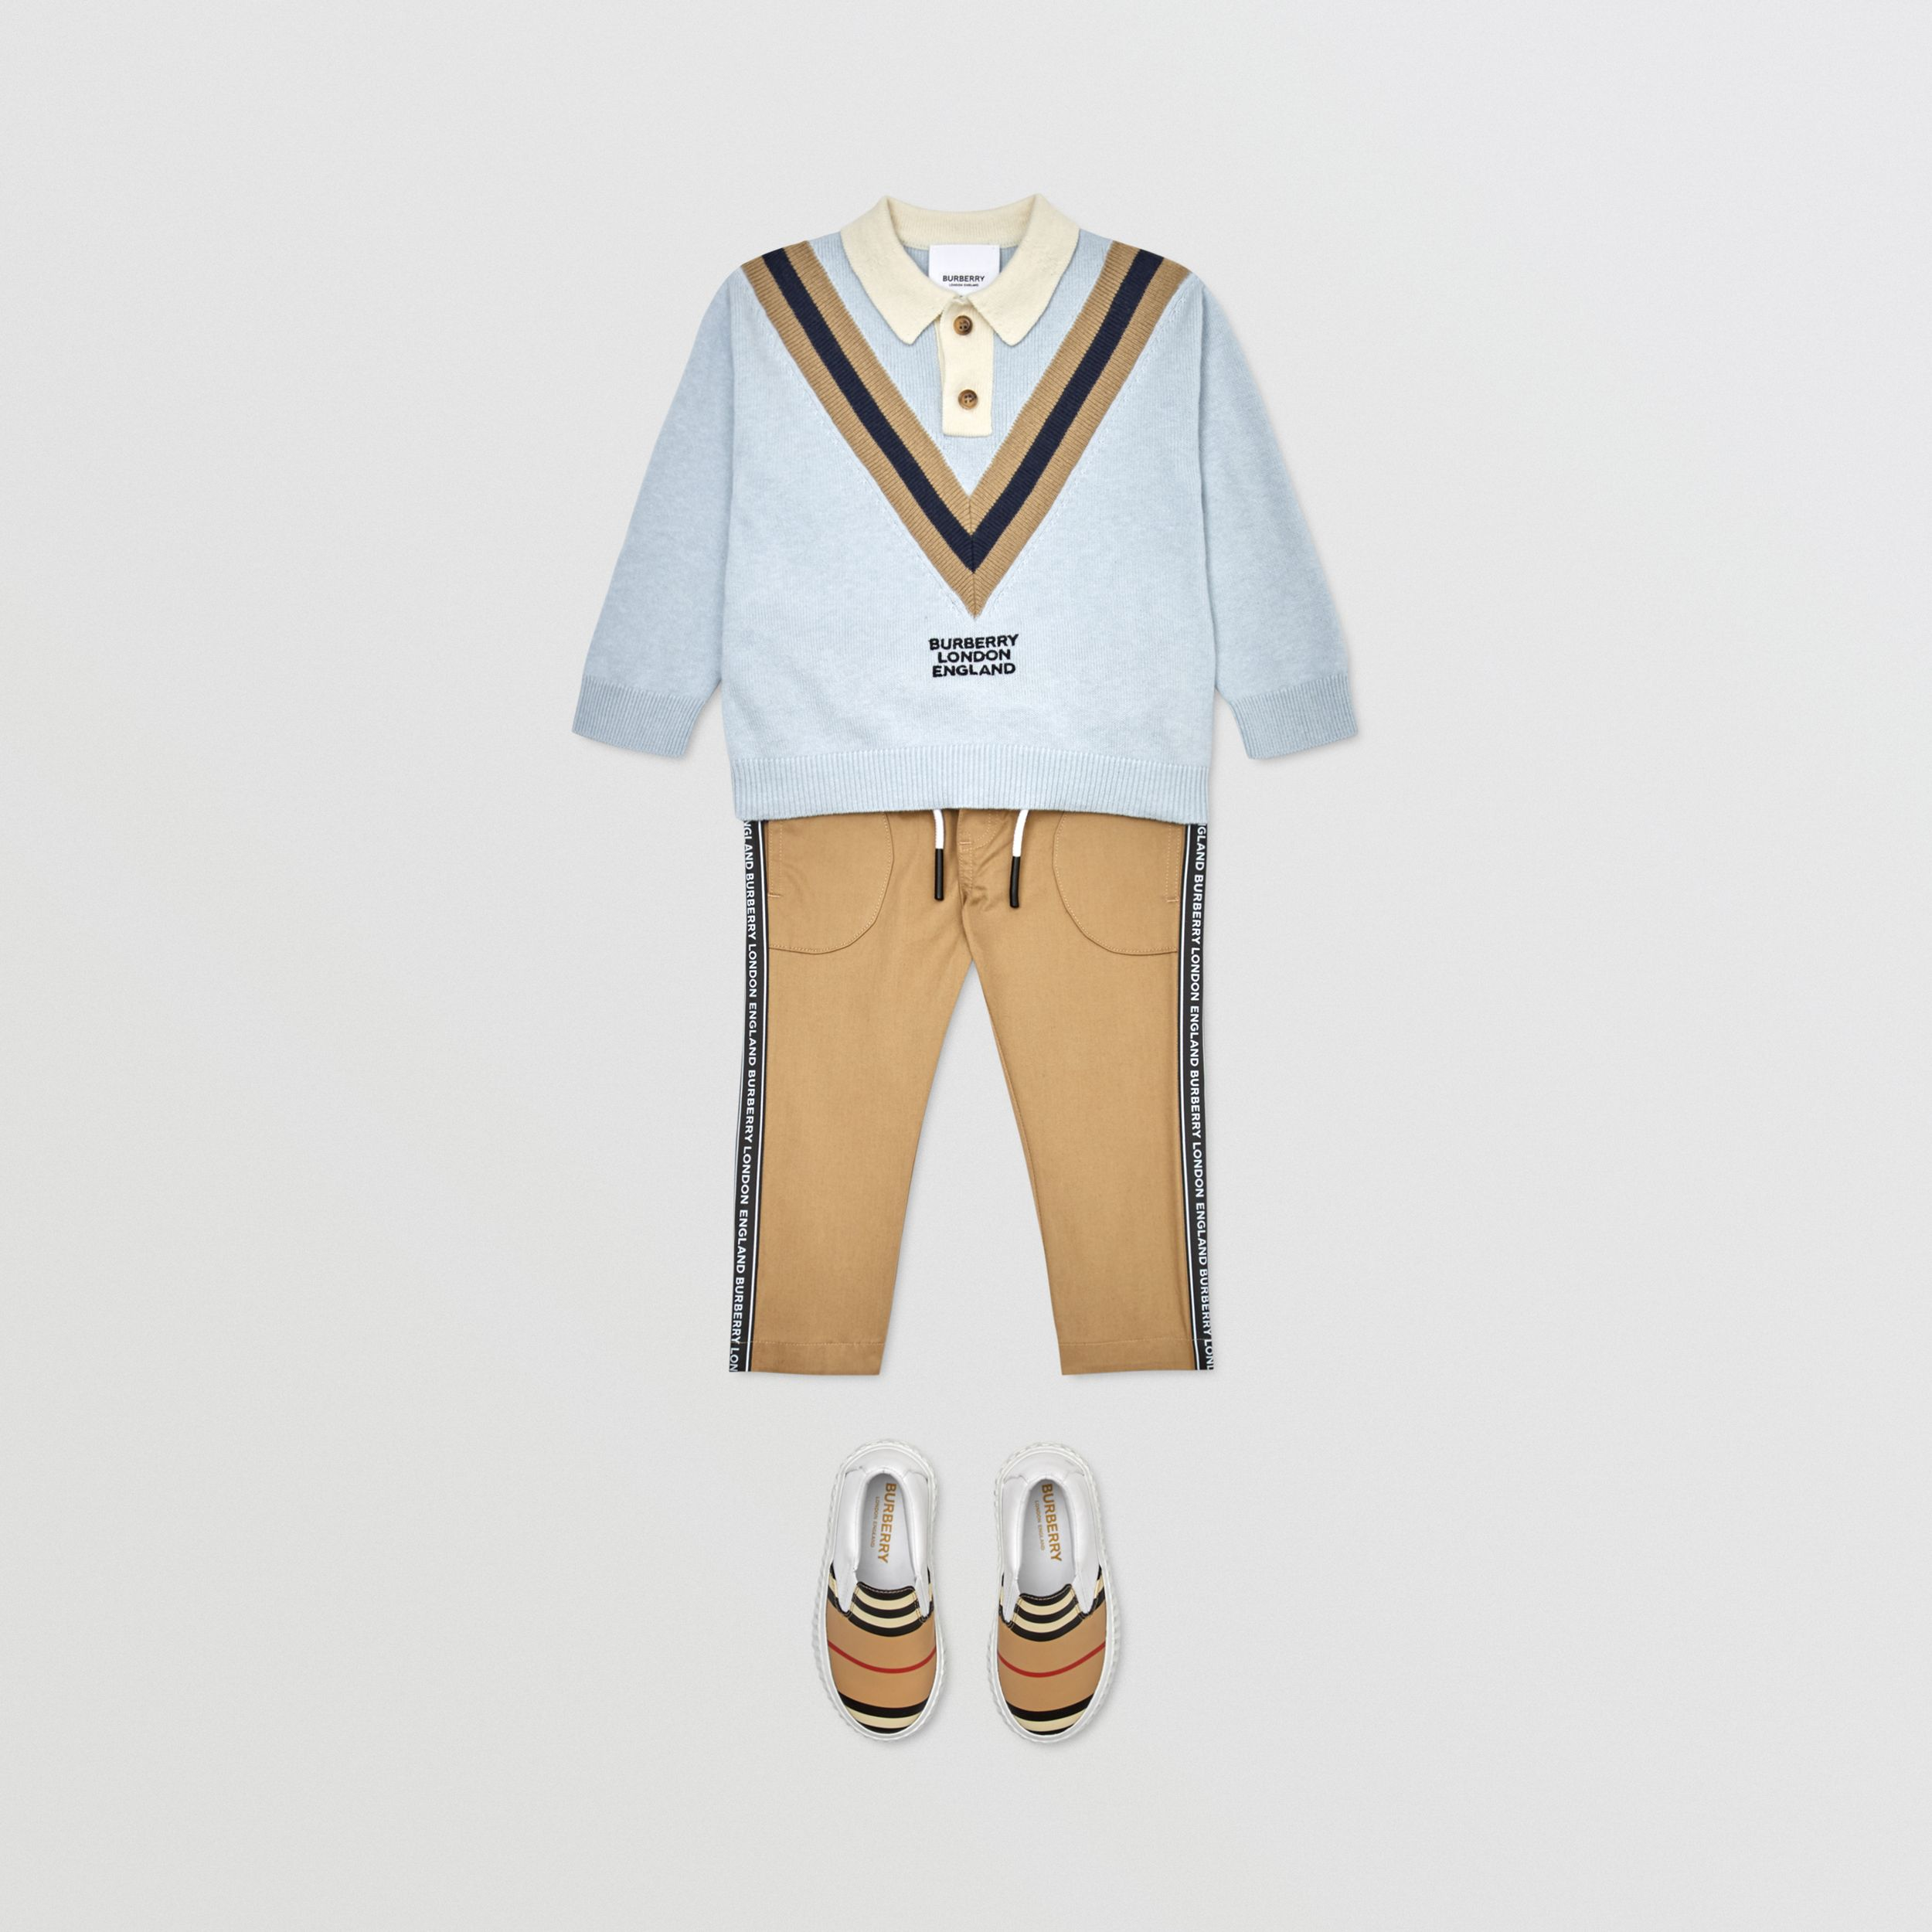 Long-sleeve Knit Cashmere Cotton Polo Shirt in Light Blue - Children | Burberry - 3